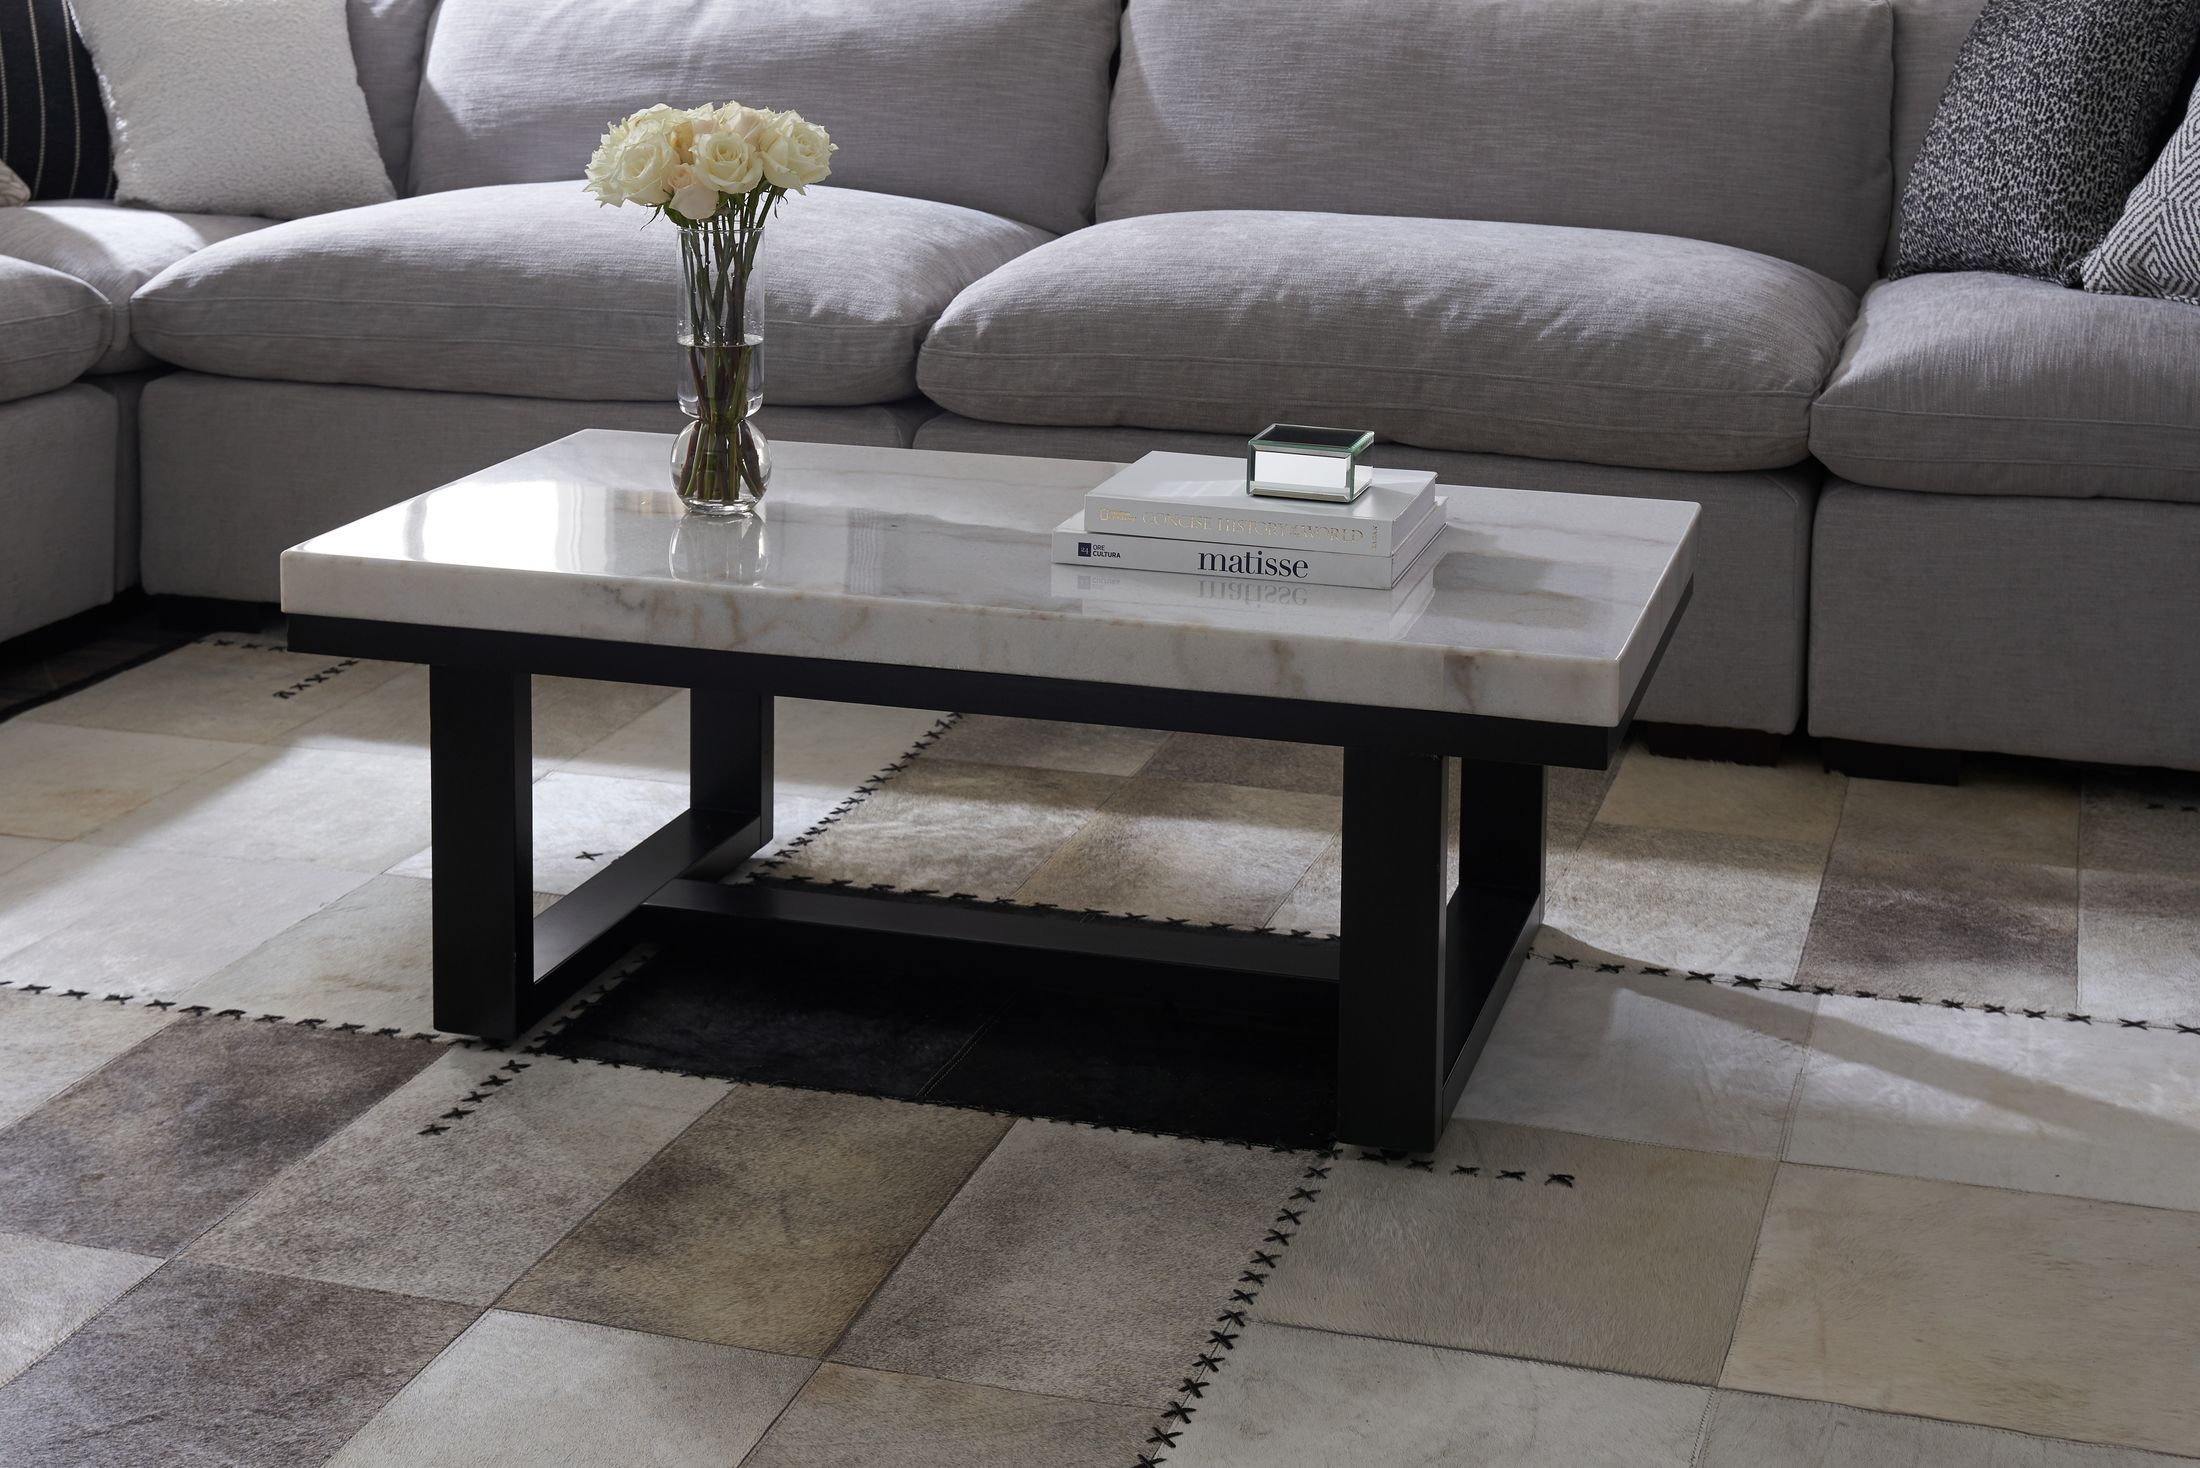 Pin By Danielle Dorsey On Front Room In 2021 Coffee Table Living Room Coffee Table Furniture [ 1468 x 2200 Pixel ]